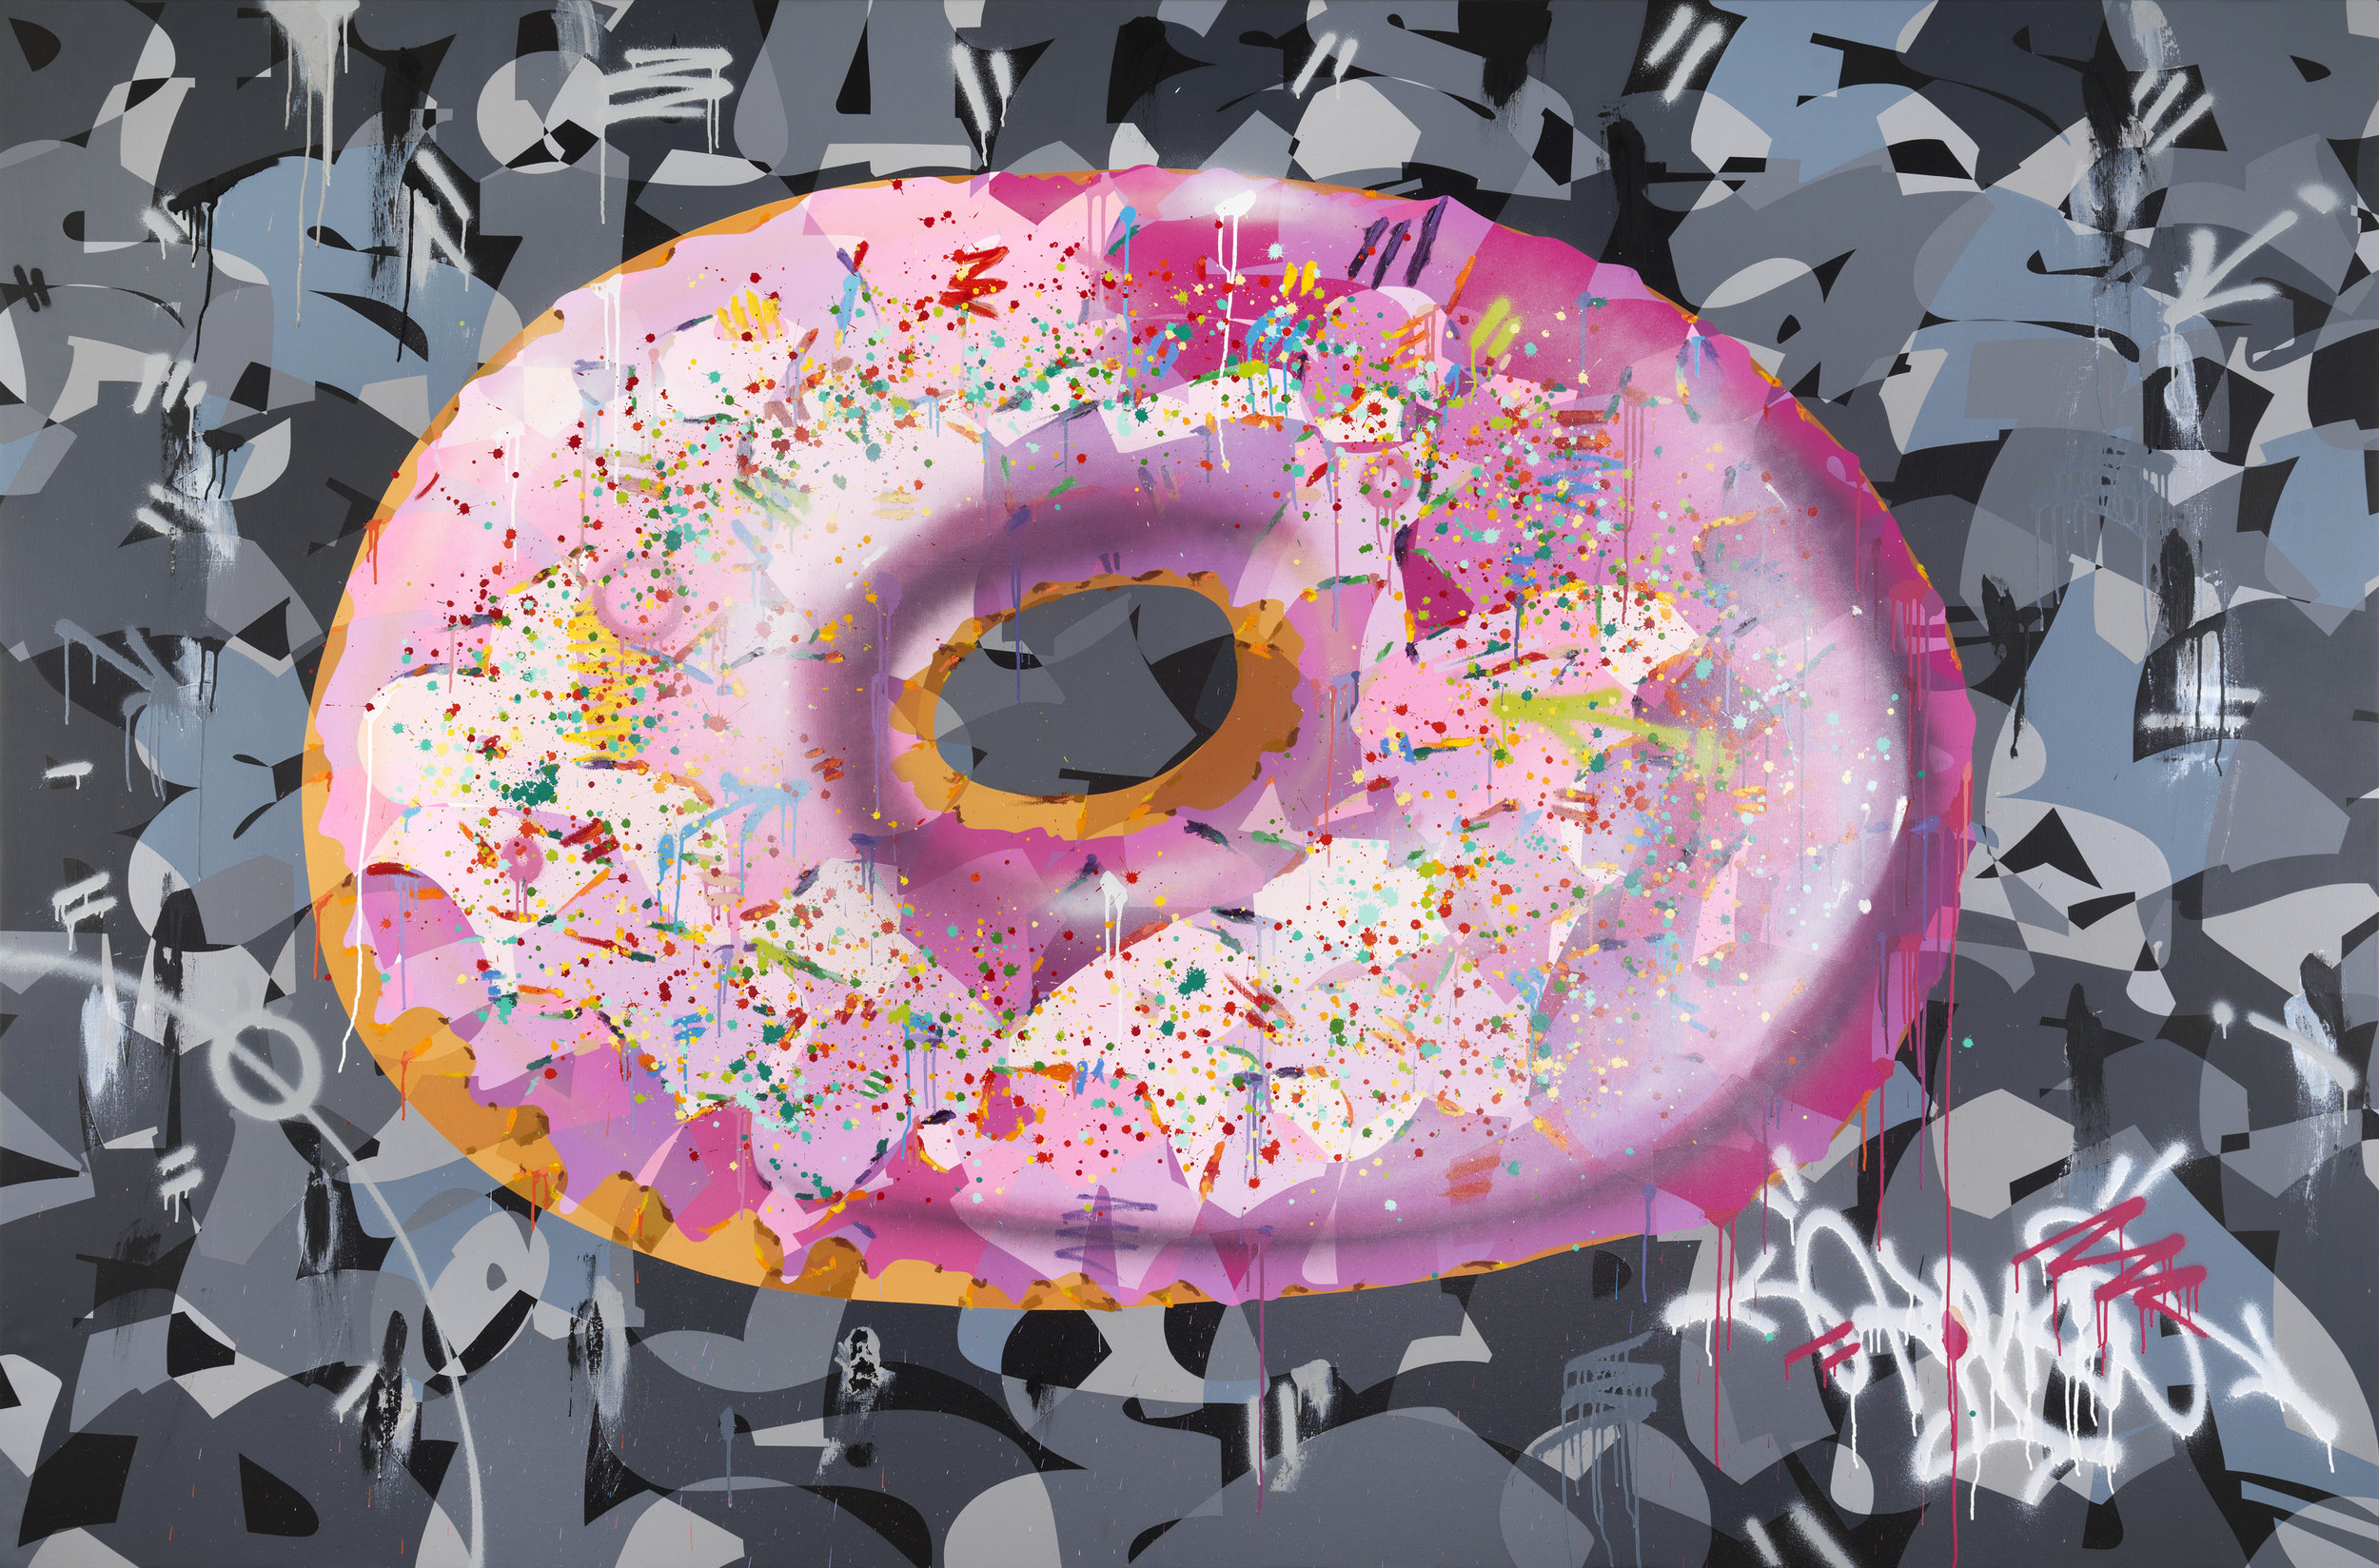 Artist: Kongo, b.1969 (FRANCE)  Title: Donut Rose Medium: mixed media on french linen Dimension: 200 cm x 300 cm Year: 2018